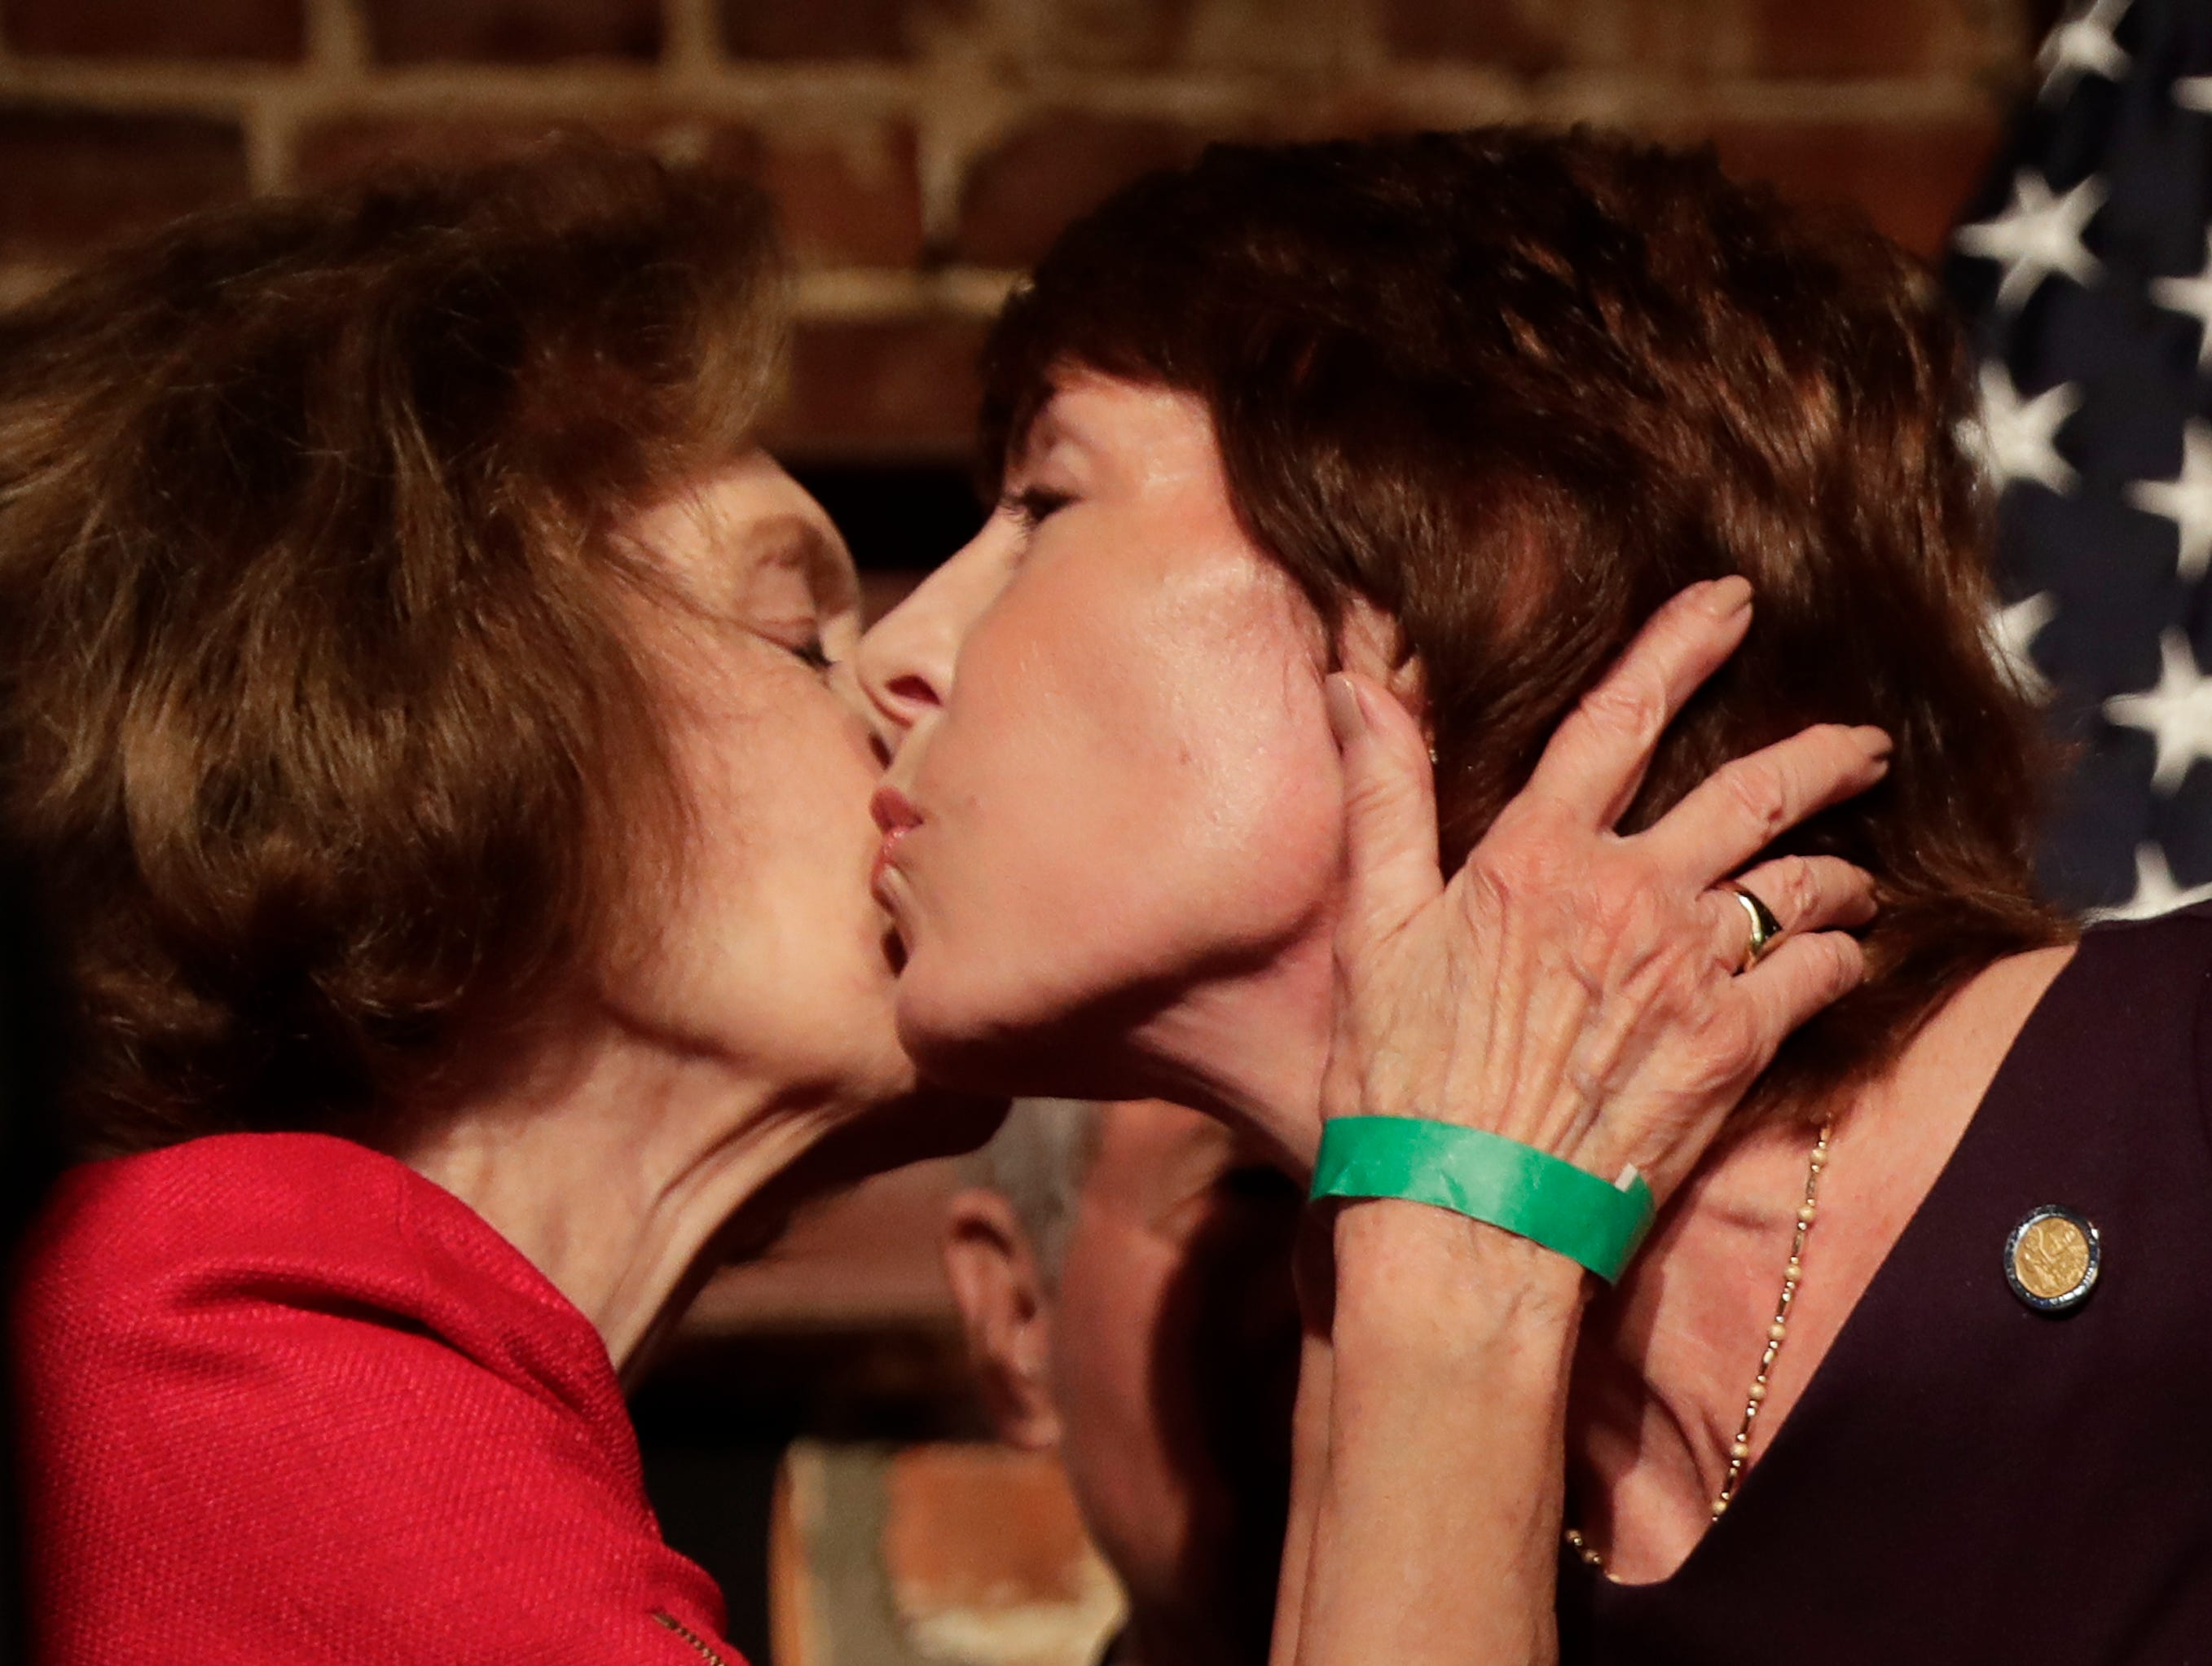 Democratic gubernatorial candidate Gwen Graham, right, gets a kiss from her mother Adele at an primary election party after she lost to opponent Andrew Gillum, Tuesday, Aug. 28, 2018, in Orlando, Fla. (AP Photo/John Raoux)